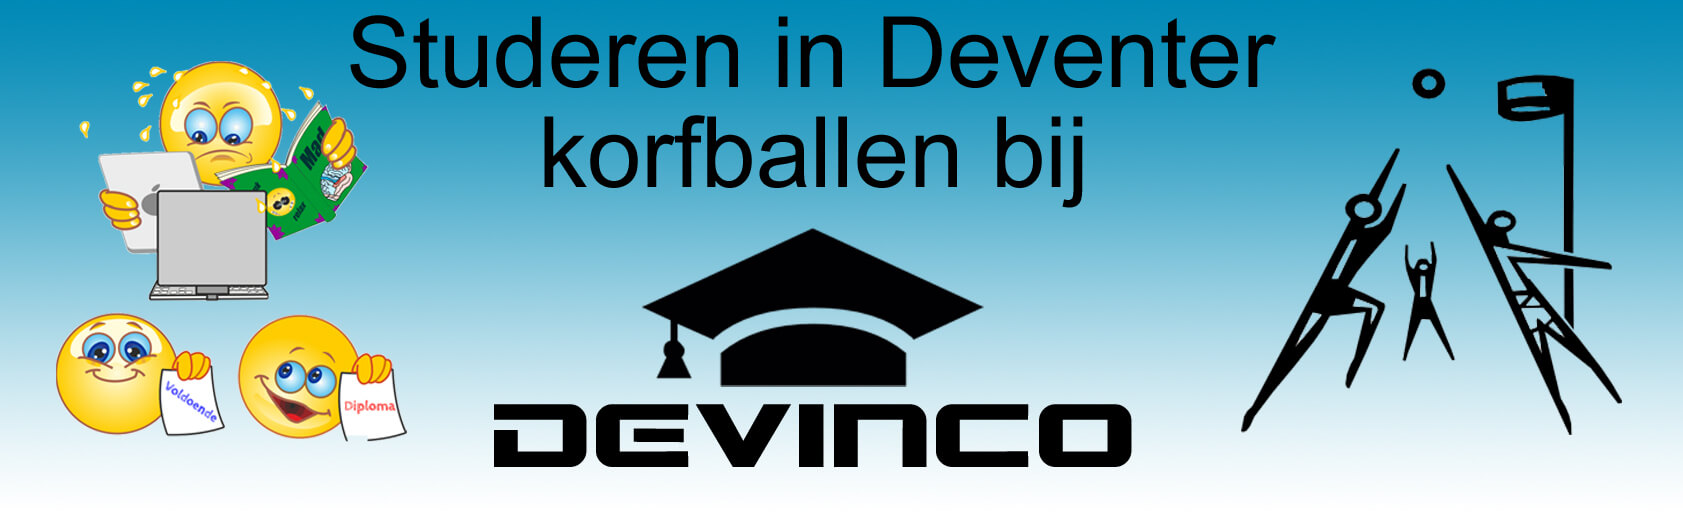 Studentenkorfbal Devinco slider